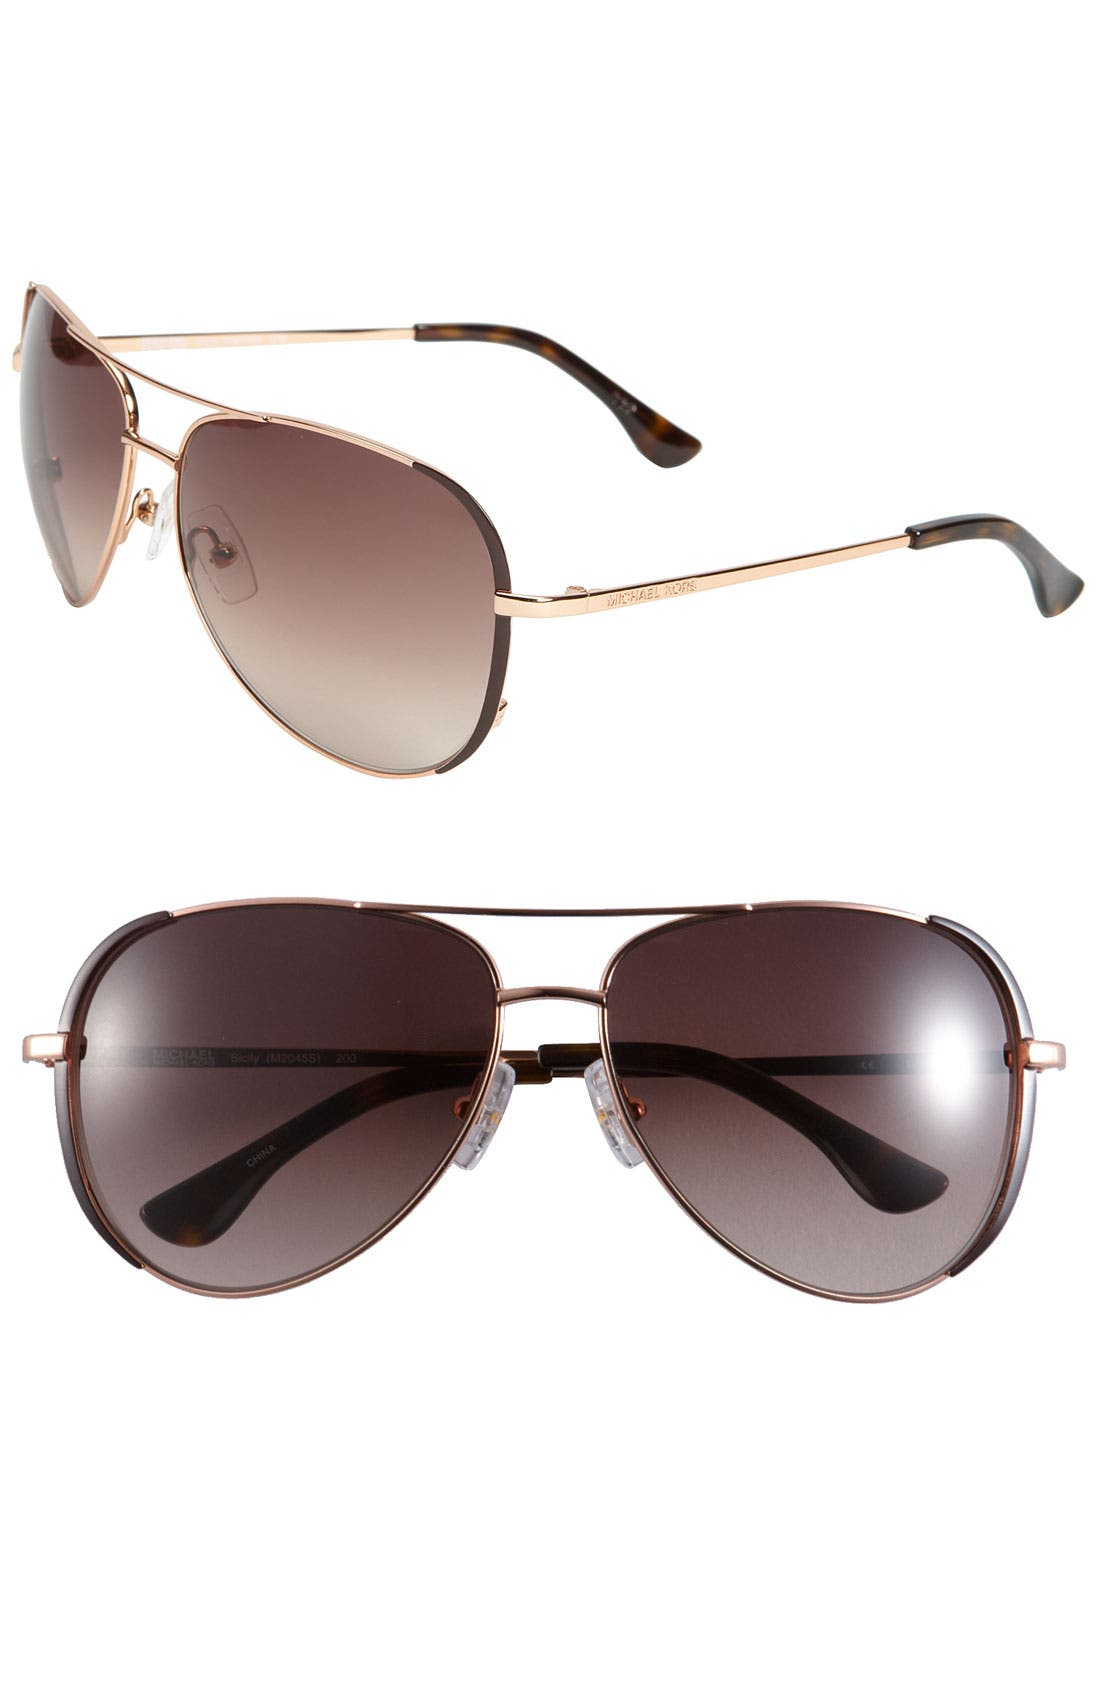 Alternate Image 1 Selected - MICHAEL Michael Kors 'Sicily' 59mm Metal Aviator Sunglasses